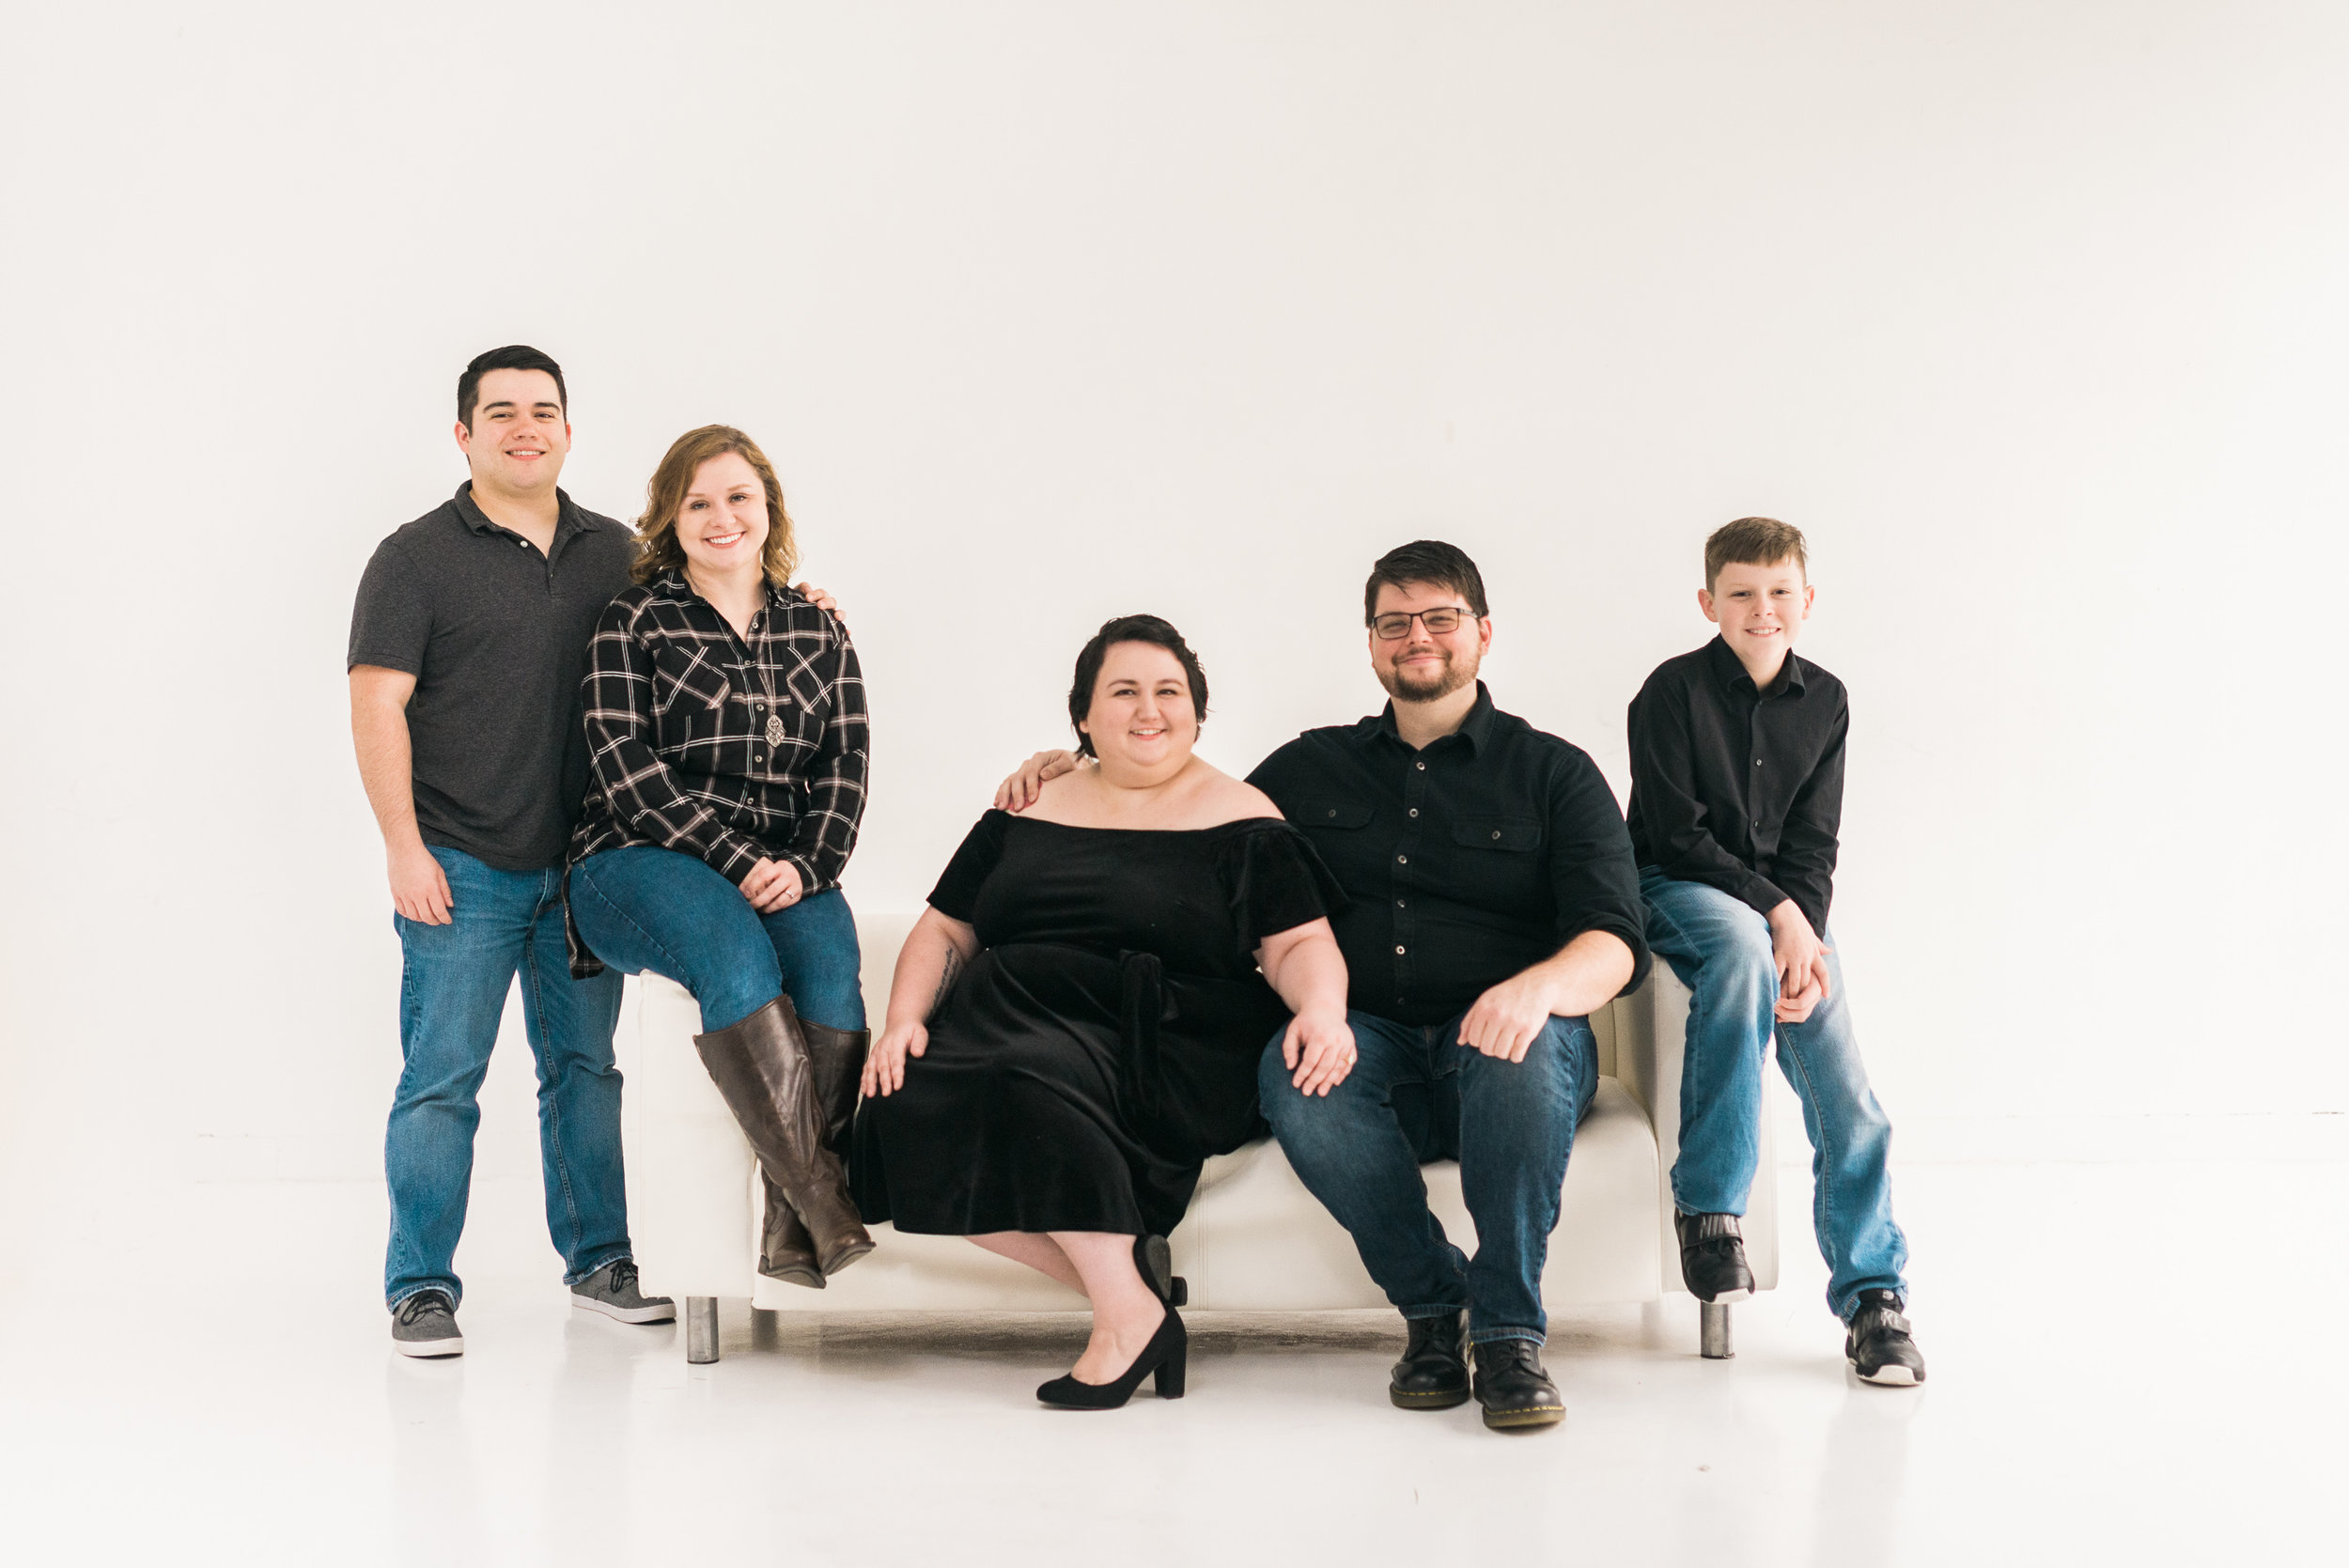 WhiteBackground_HoustonFamilyPortraitPhotographer_ModernStudio_FamilyPhotos9.jpg